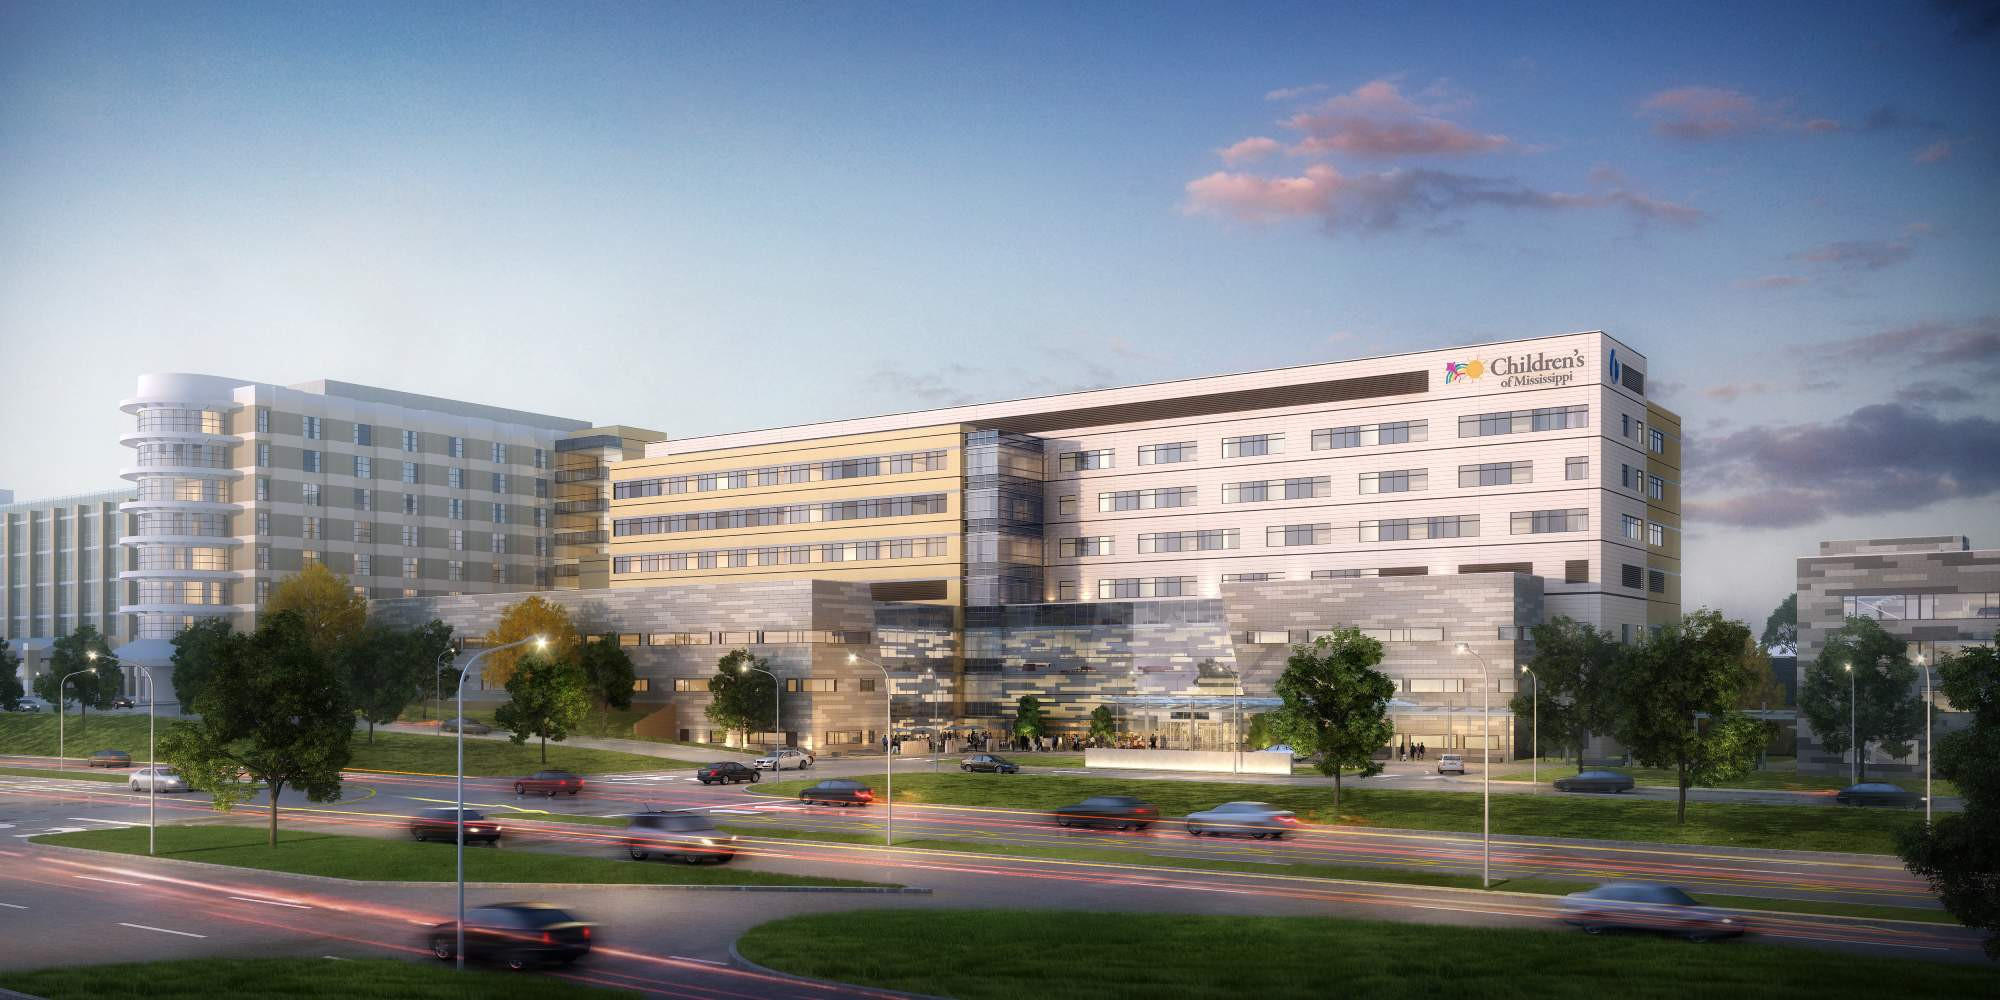 Rendering of the Children's Hospital Expansion Project